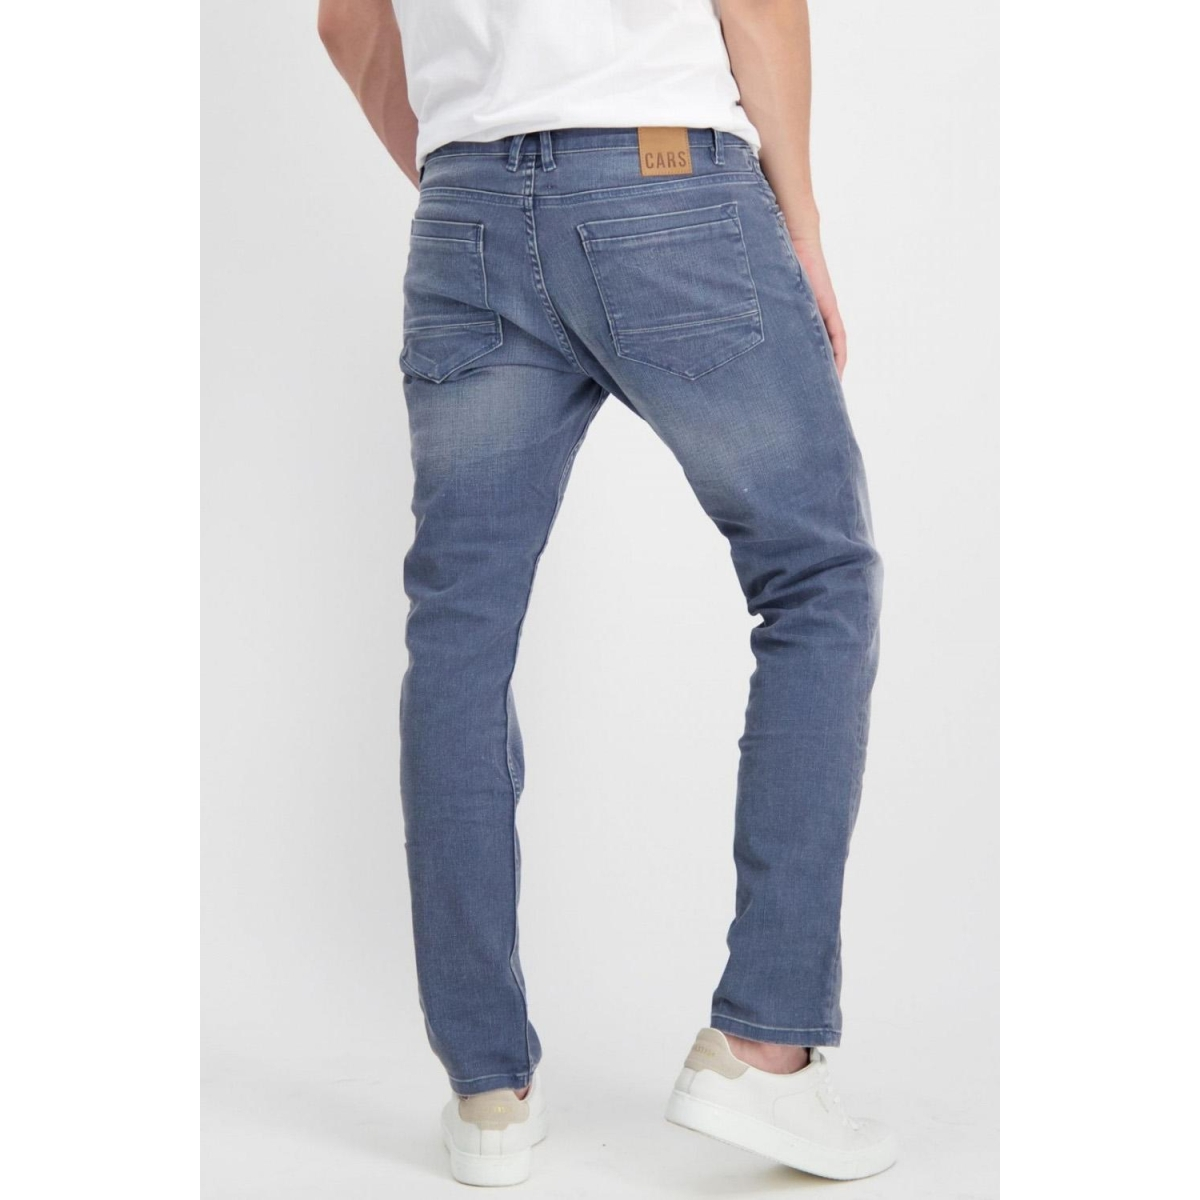 henlow regular 76738 cars jeans 71 smokey blue